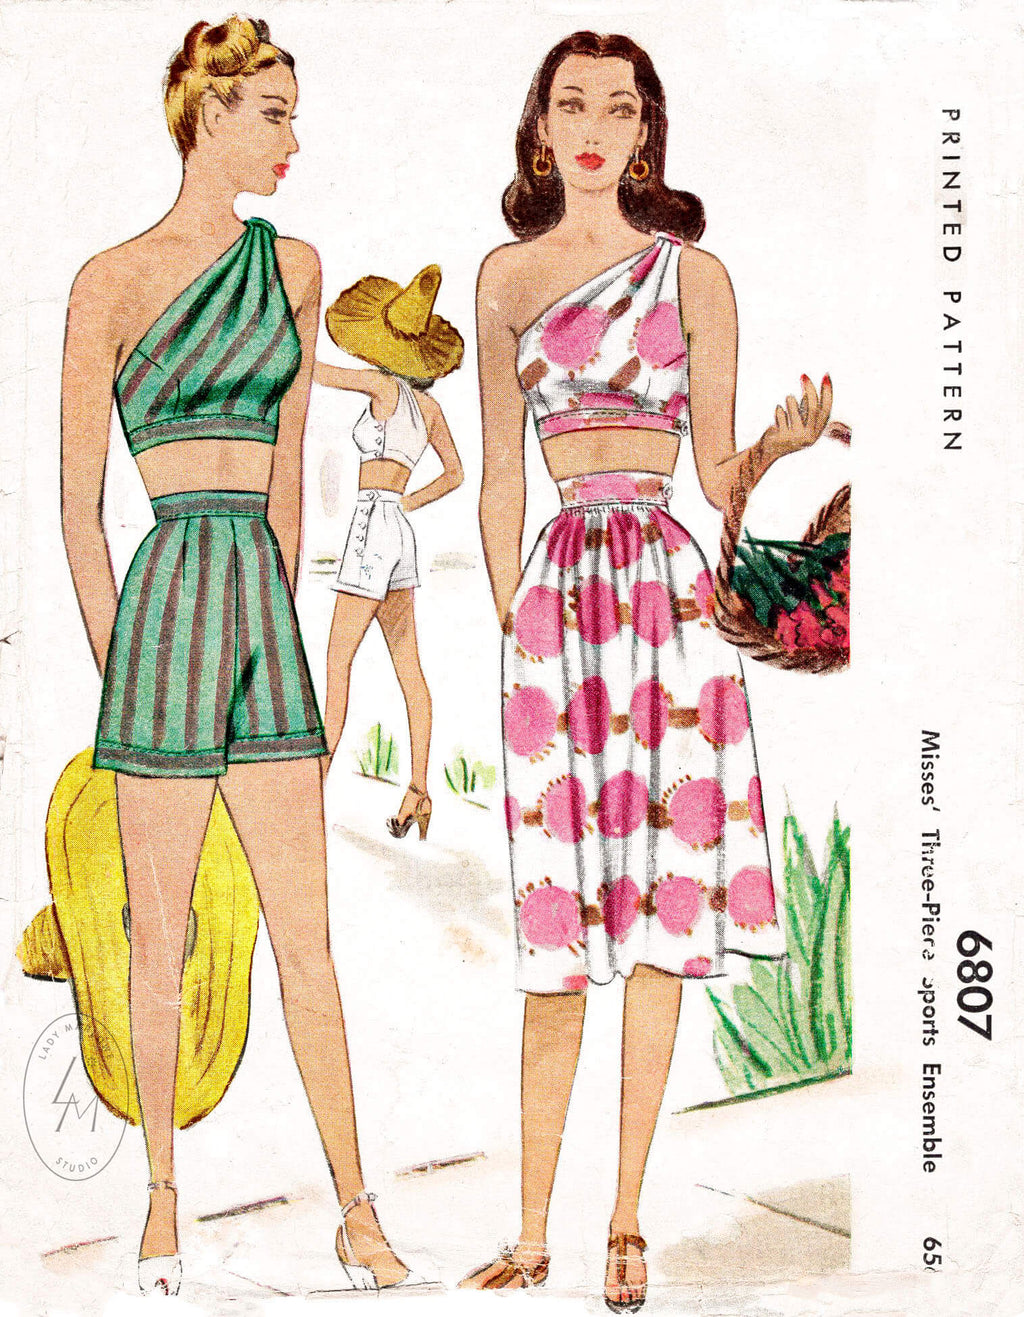 McCall 6807 vintage sewing pattern reproduction 1940s 1947 one shoulder crop top sun skirt high waisted shorts